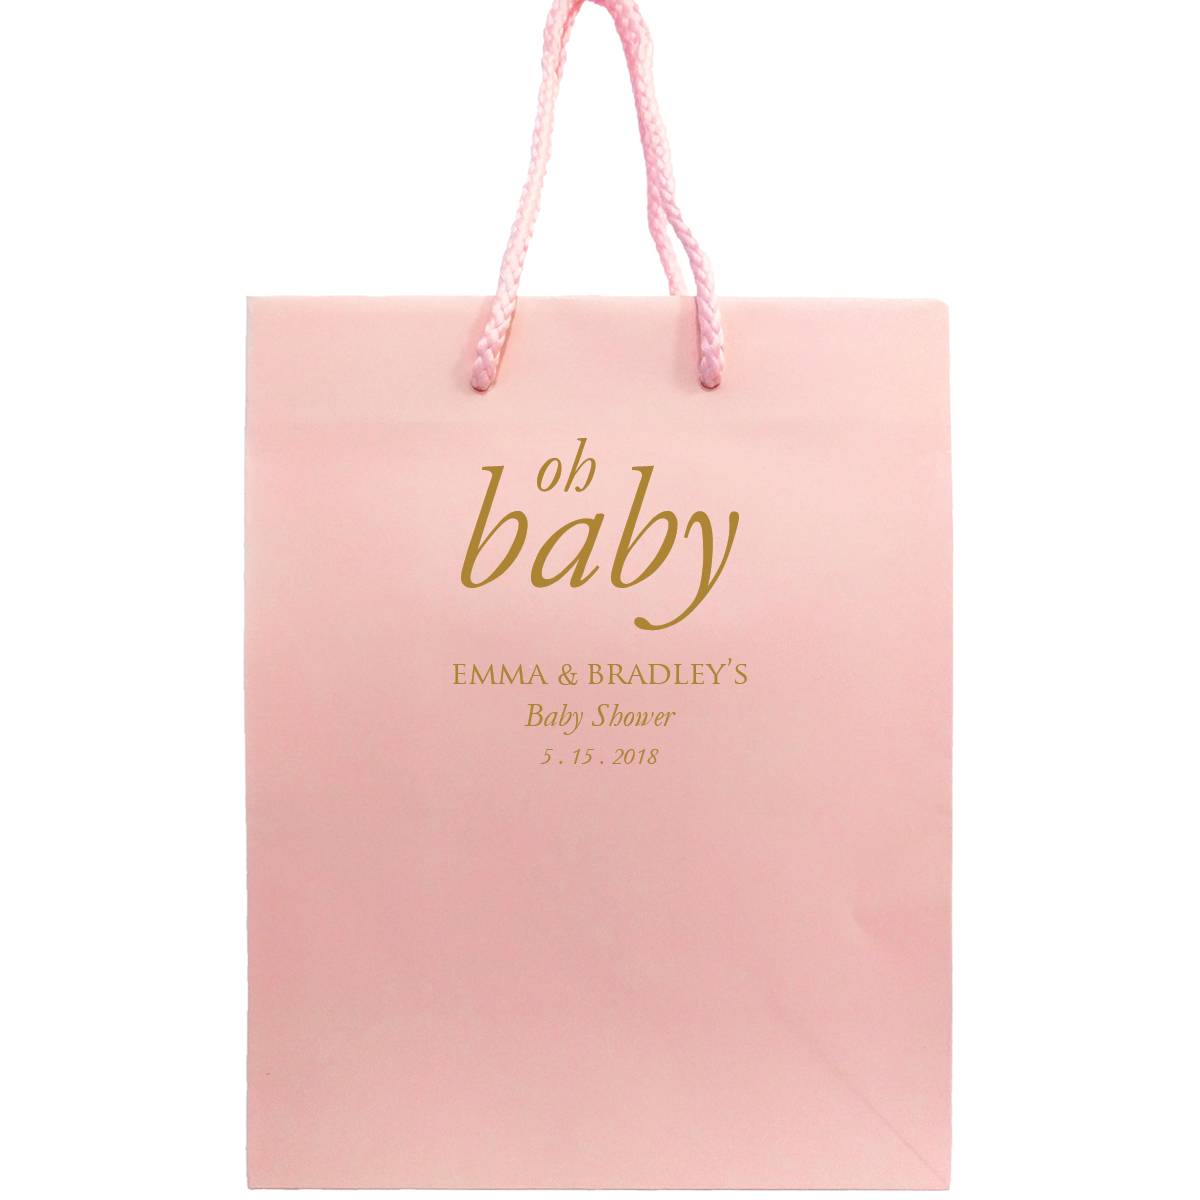 Oh Baby Bags - Personalized Gift Bag - Nora Collection  sc 1 st  Tea and Becky & Oh Baby Bags - Personalized Gift Bag - Nora Collection u2013 Tea and Becky